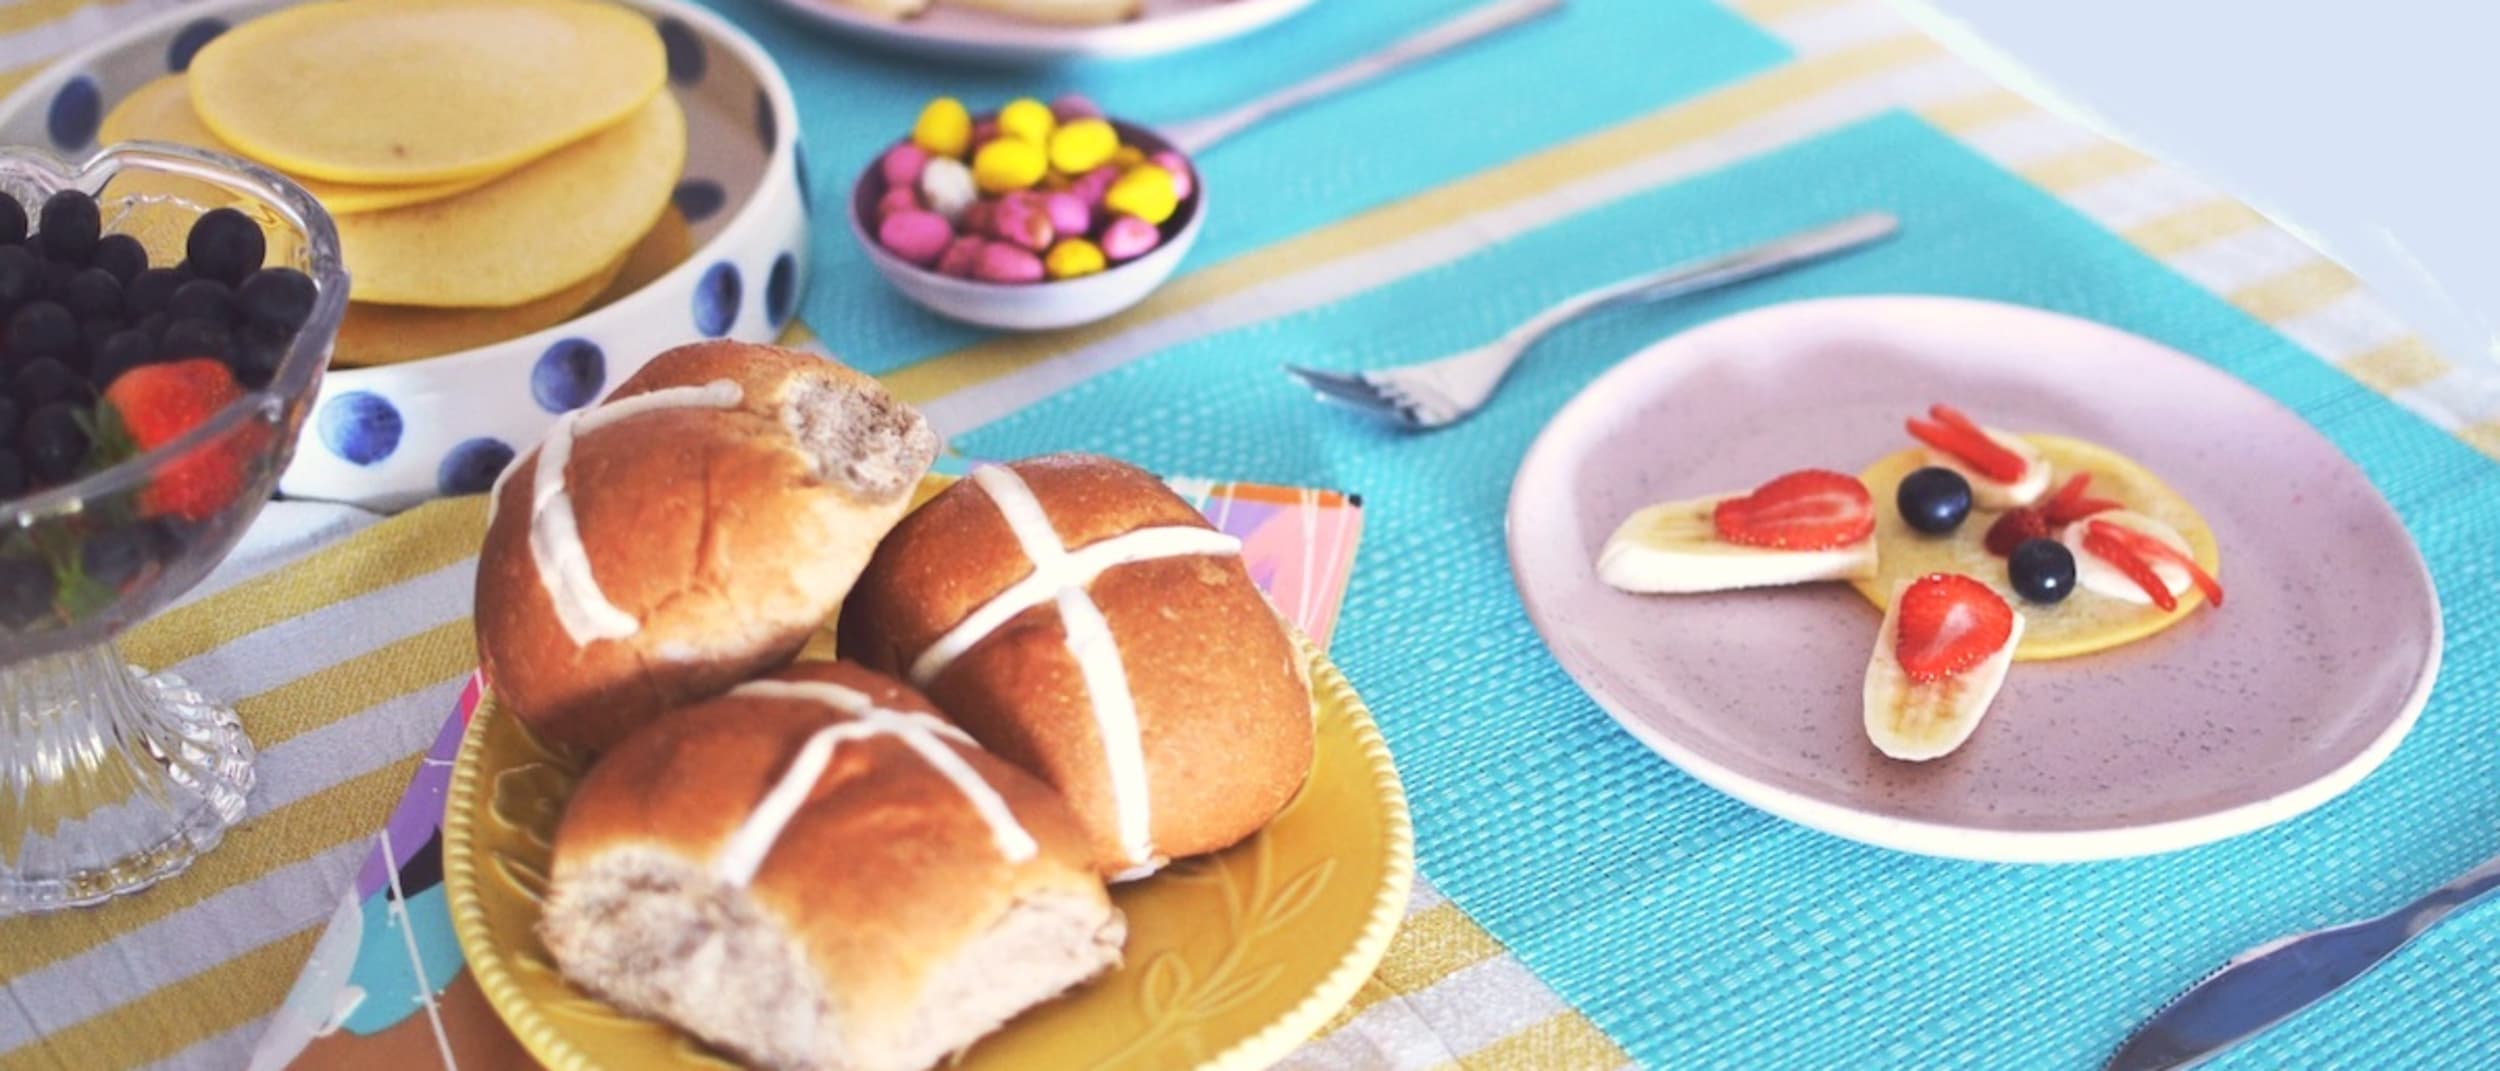 Hot cross bun decorating